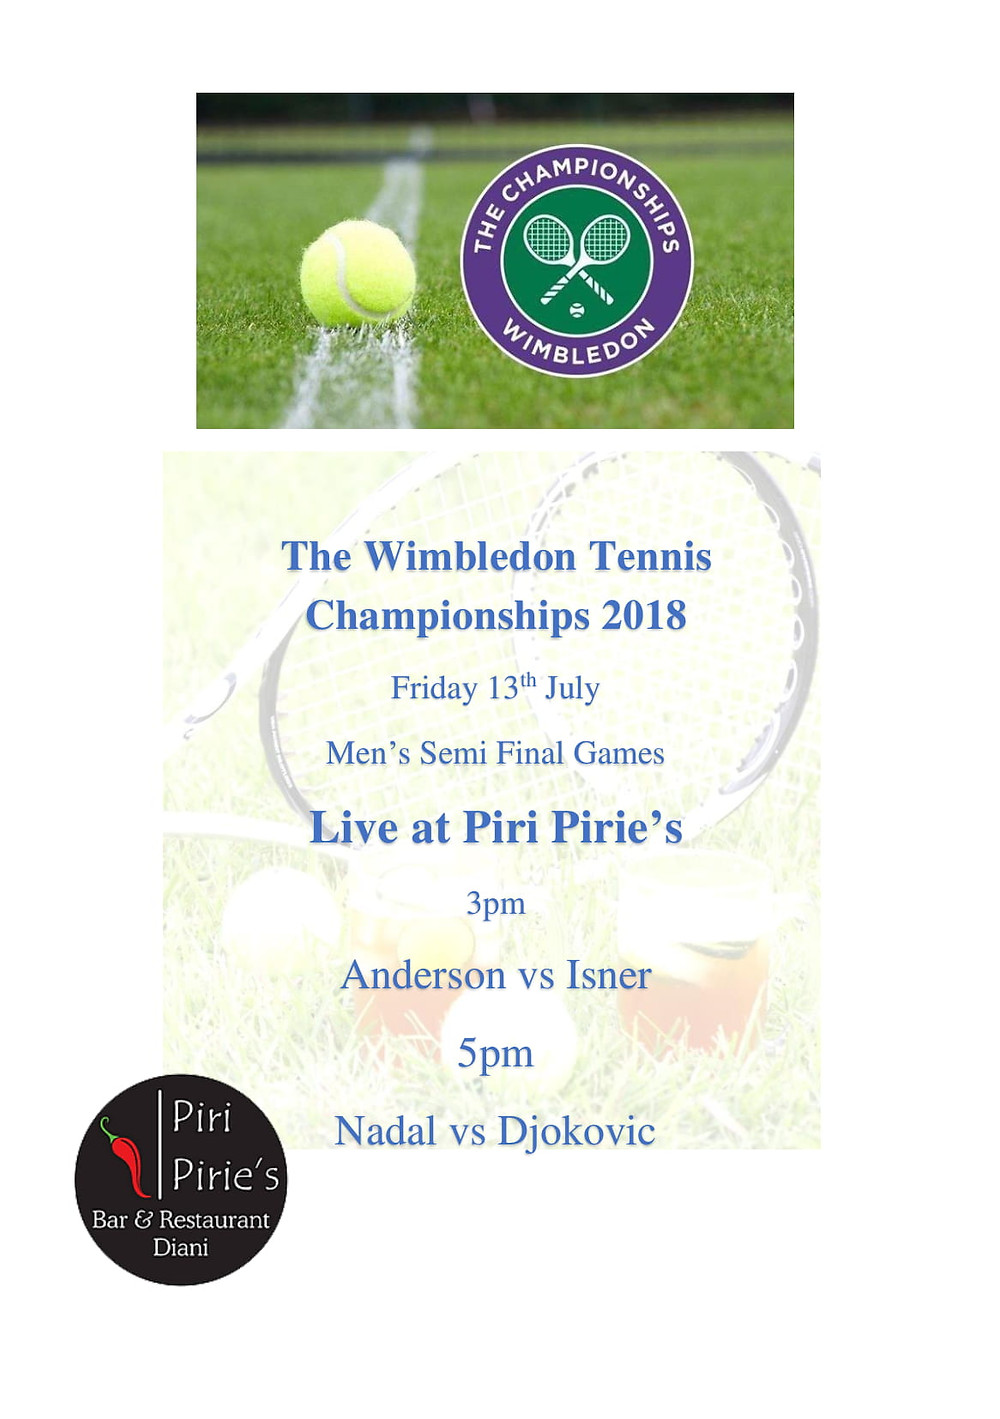 Wimbledom Men's Semi Finals Today from 3pm.